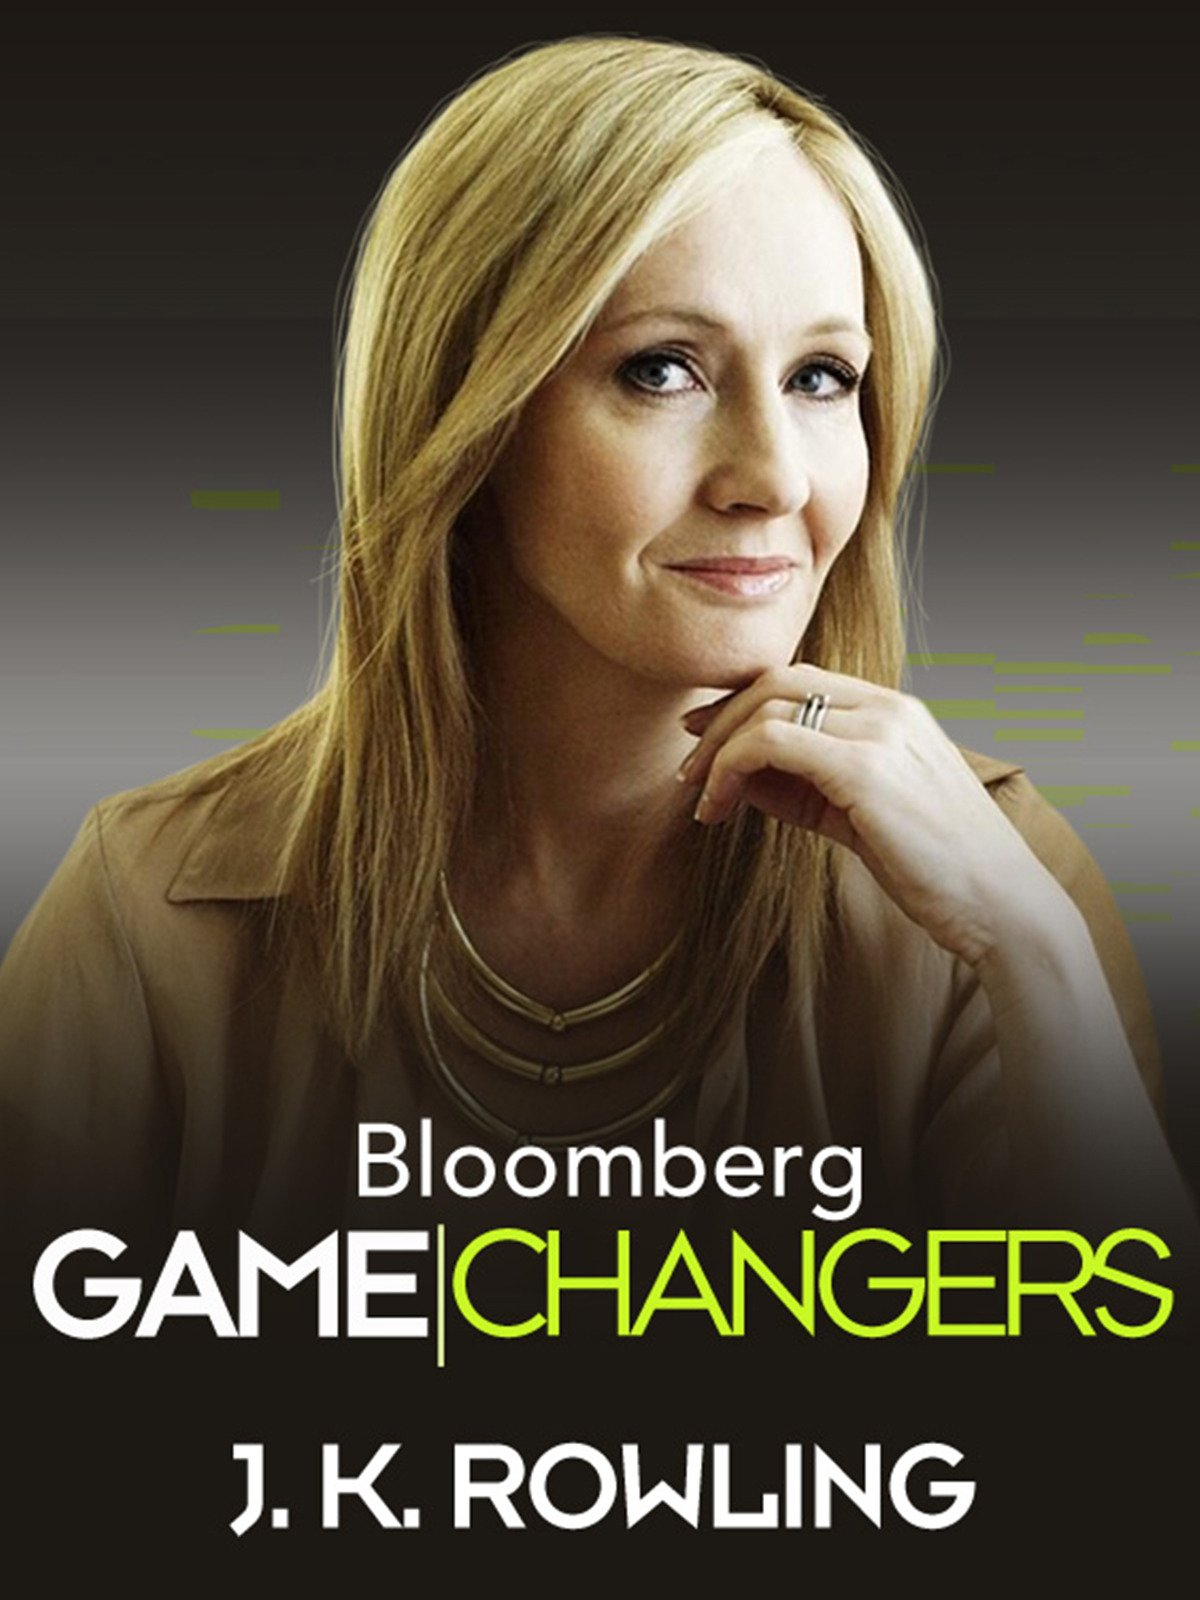 Game Changers - Bloomberg